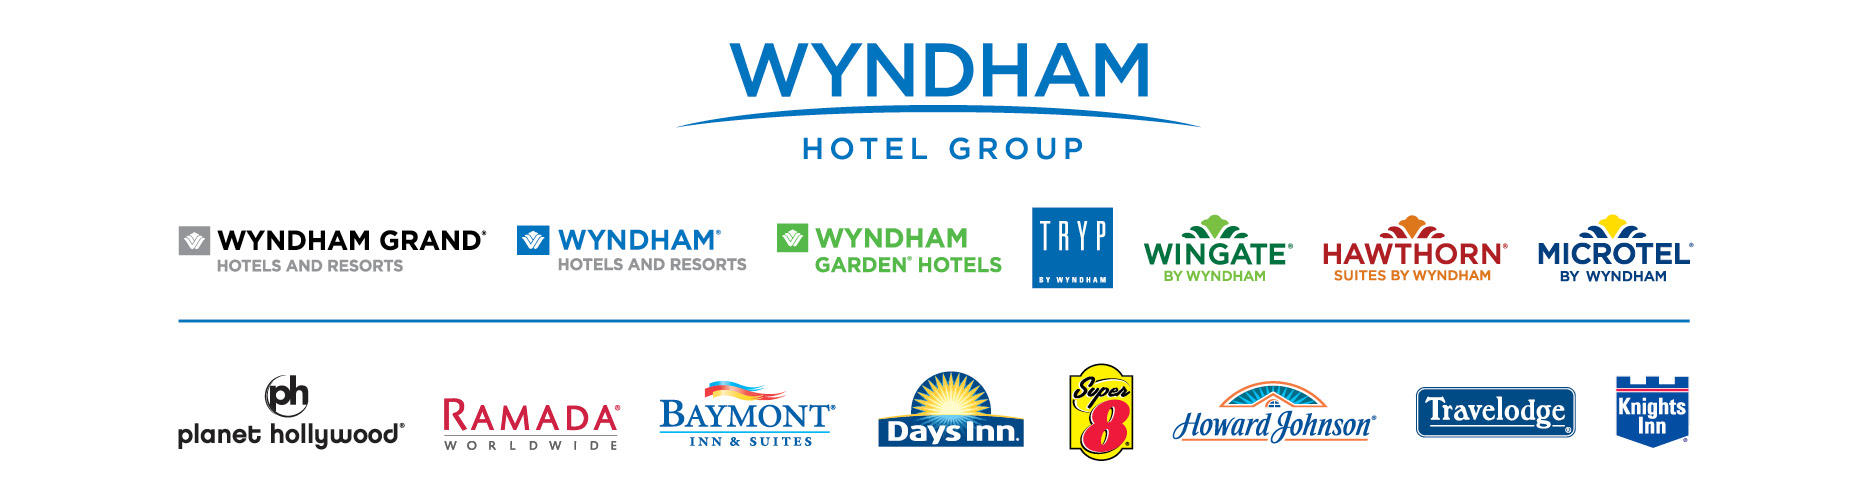 Wyndham logos large